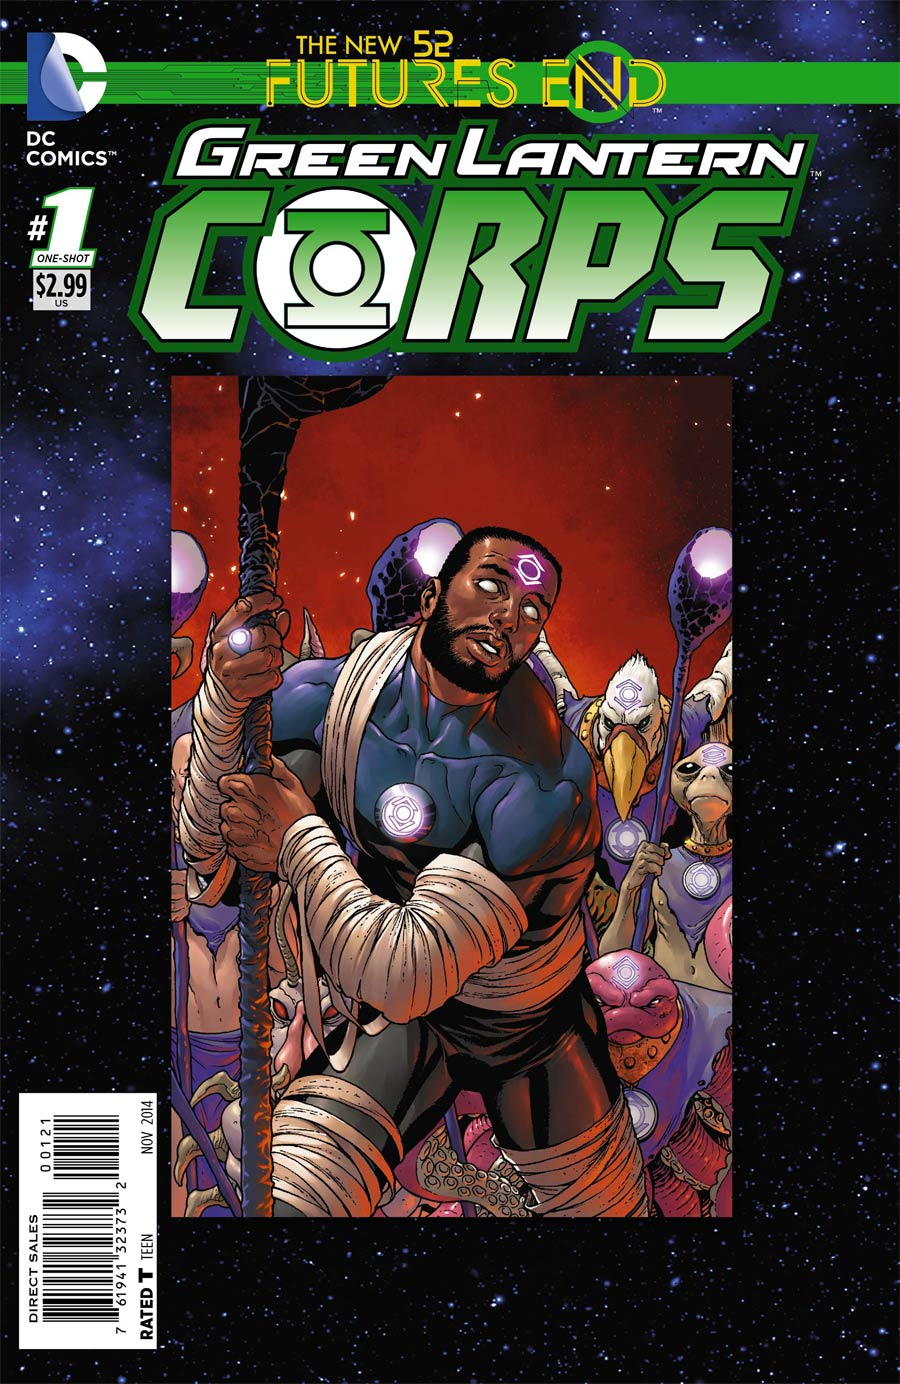 Green Lantern Corps Futures End #1 Cover B Standard Cover